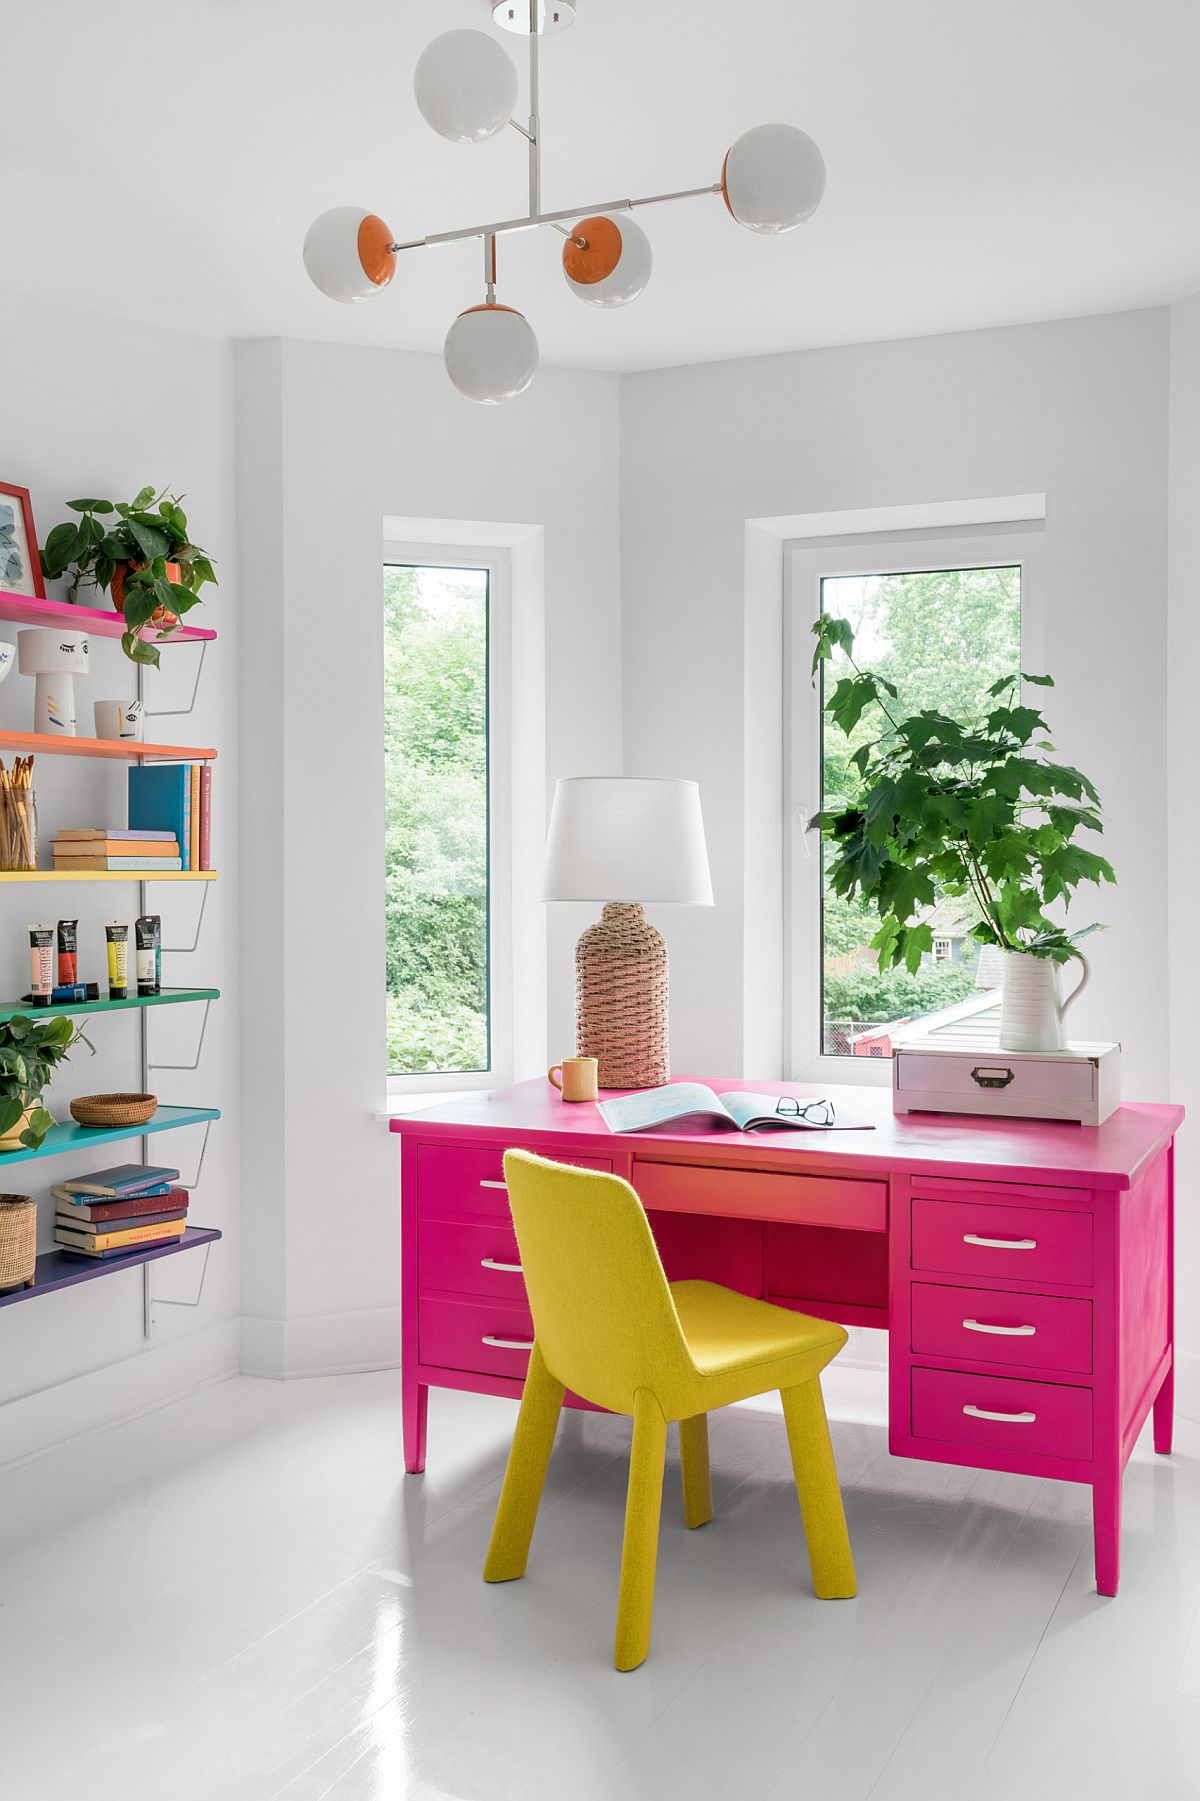 Brilliant hot pink desk and bright yellow chair steal the show in this contemporary home office